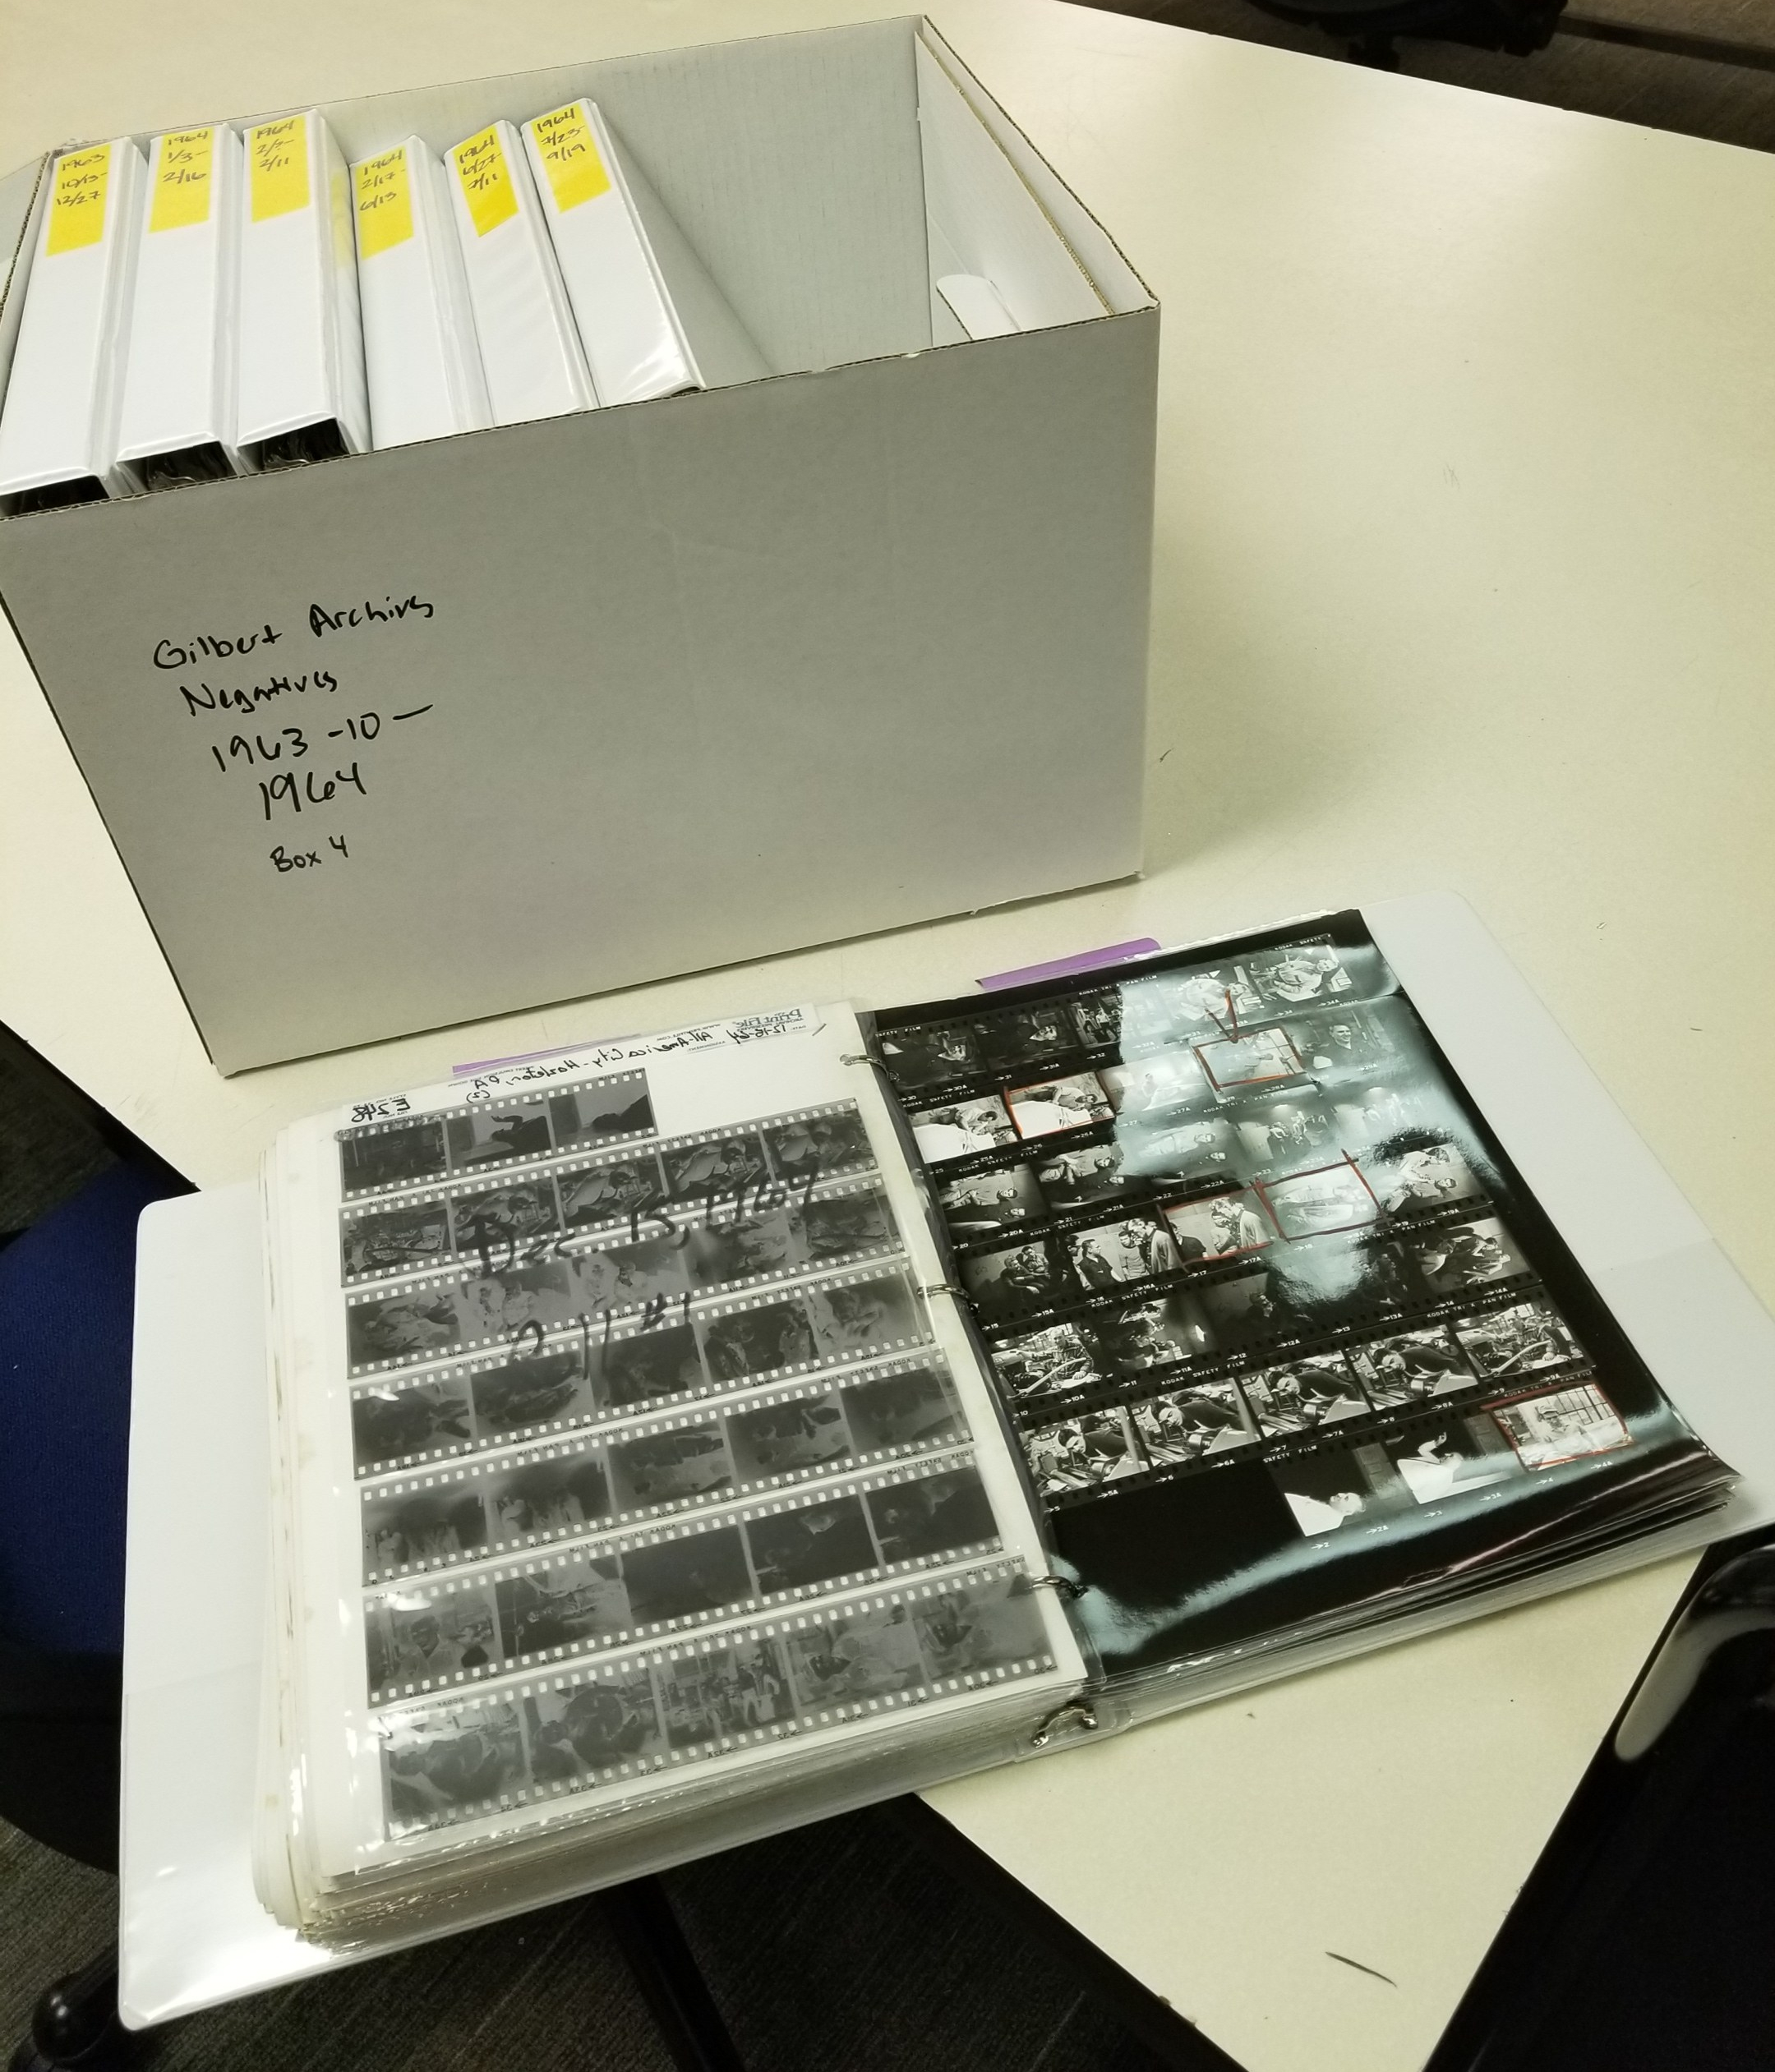 A binder full of 35mm photo negatives and contact sheets sits in front of a box full of binders